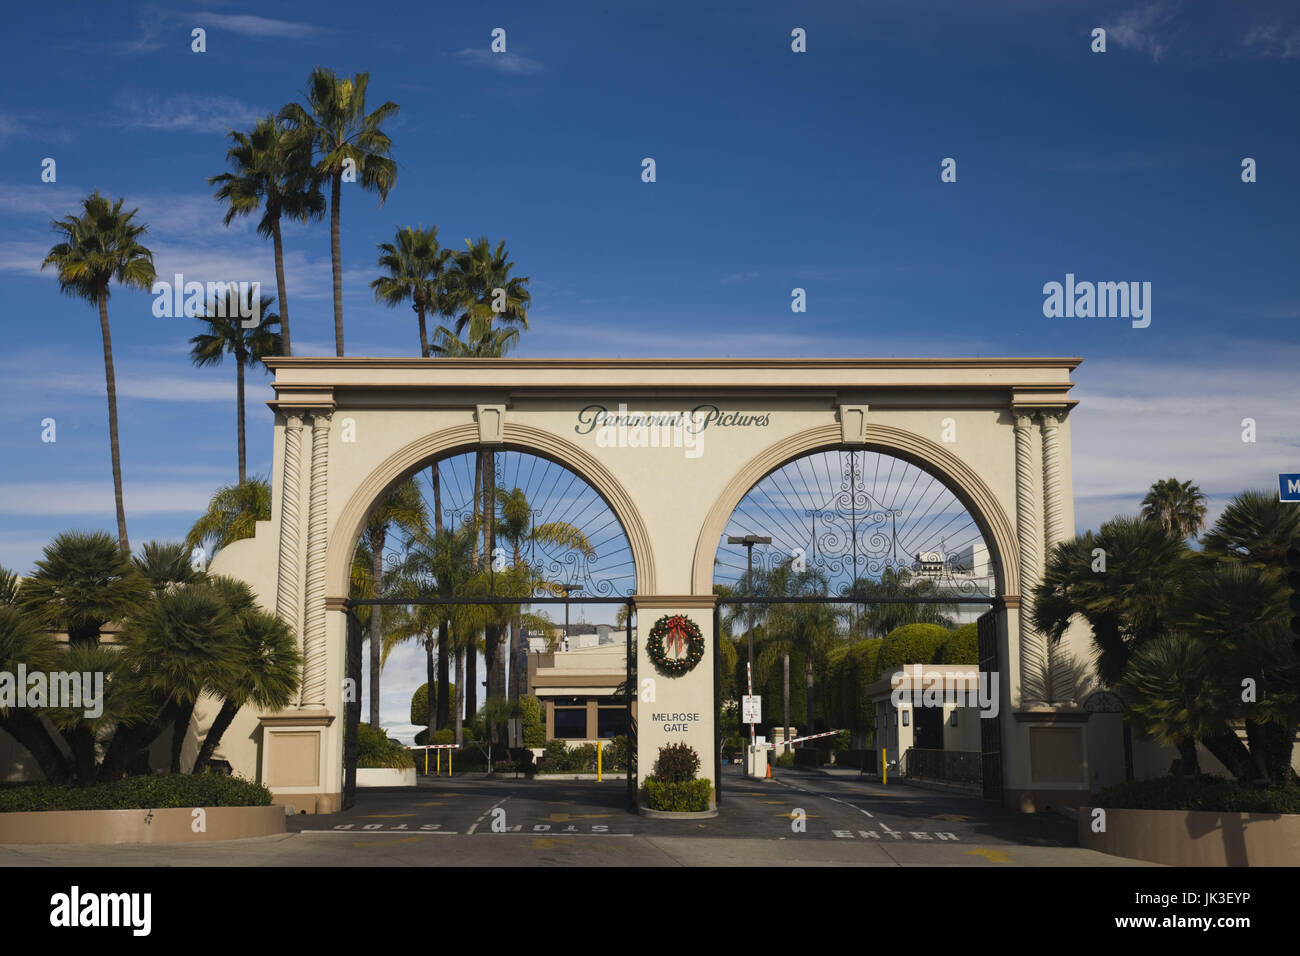 USA, California, Los Angeles, Hollywood, entrance gate to Paramount Studios on Melrose Avenue Stock Photo